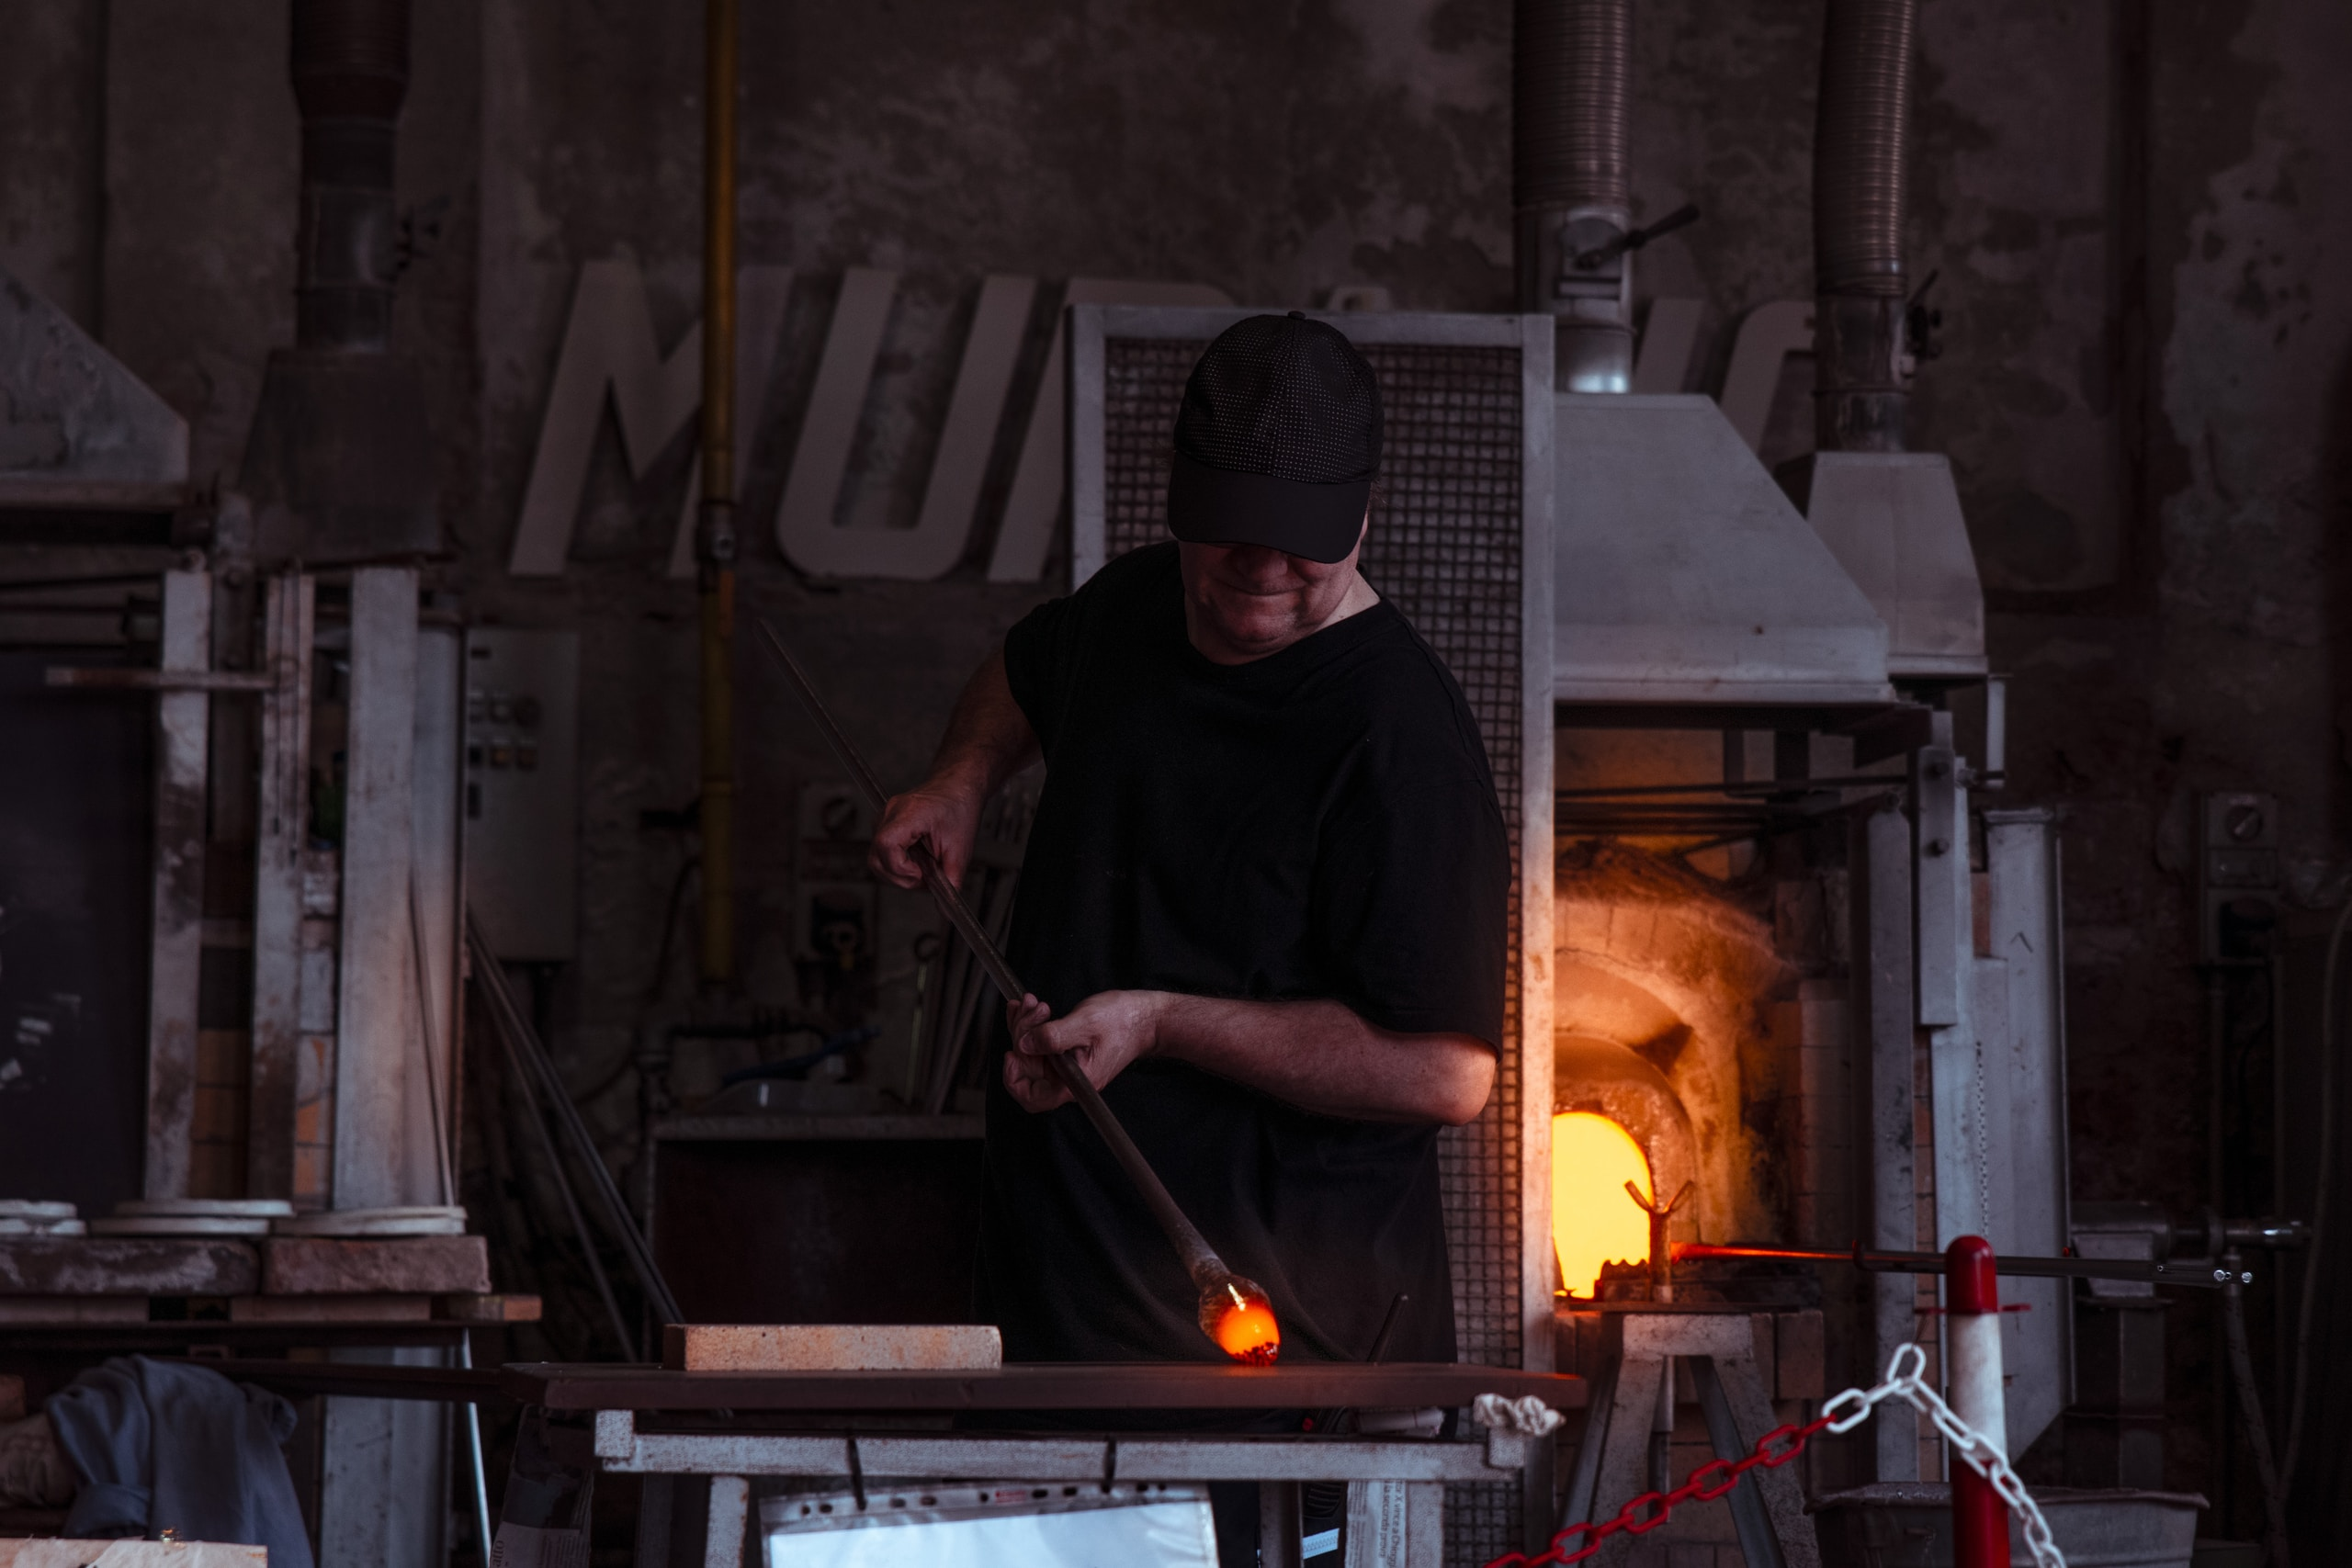 blacksmith standing at the table